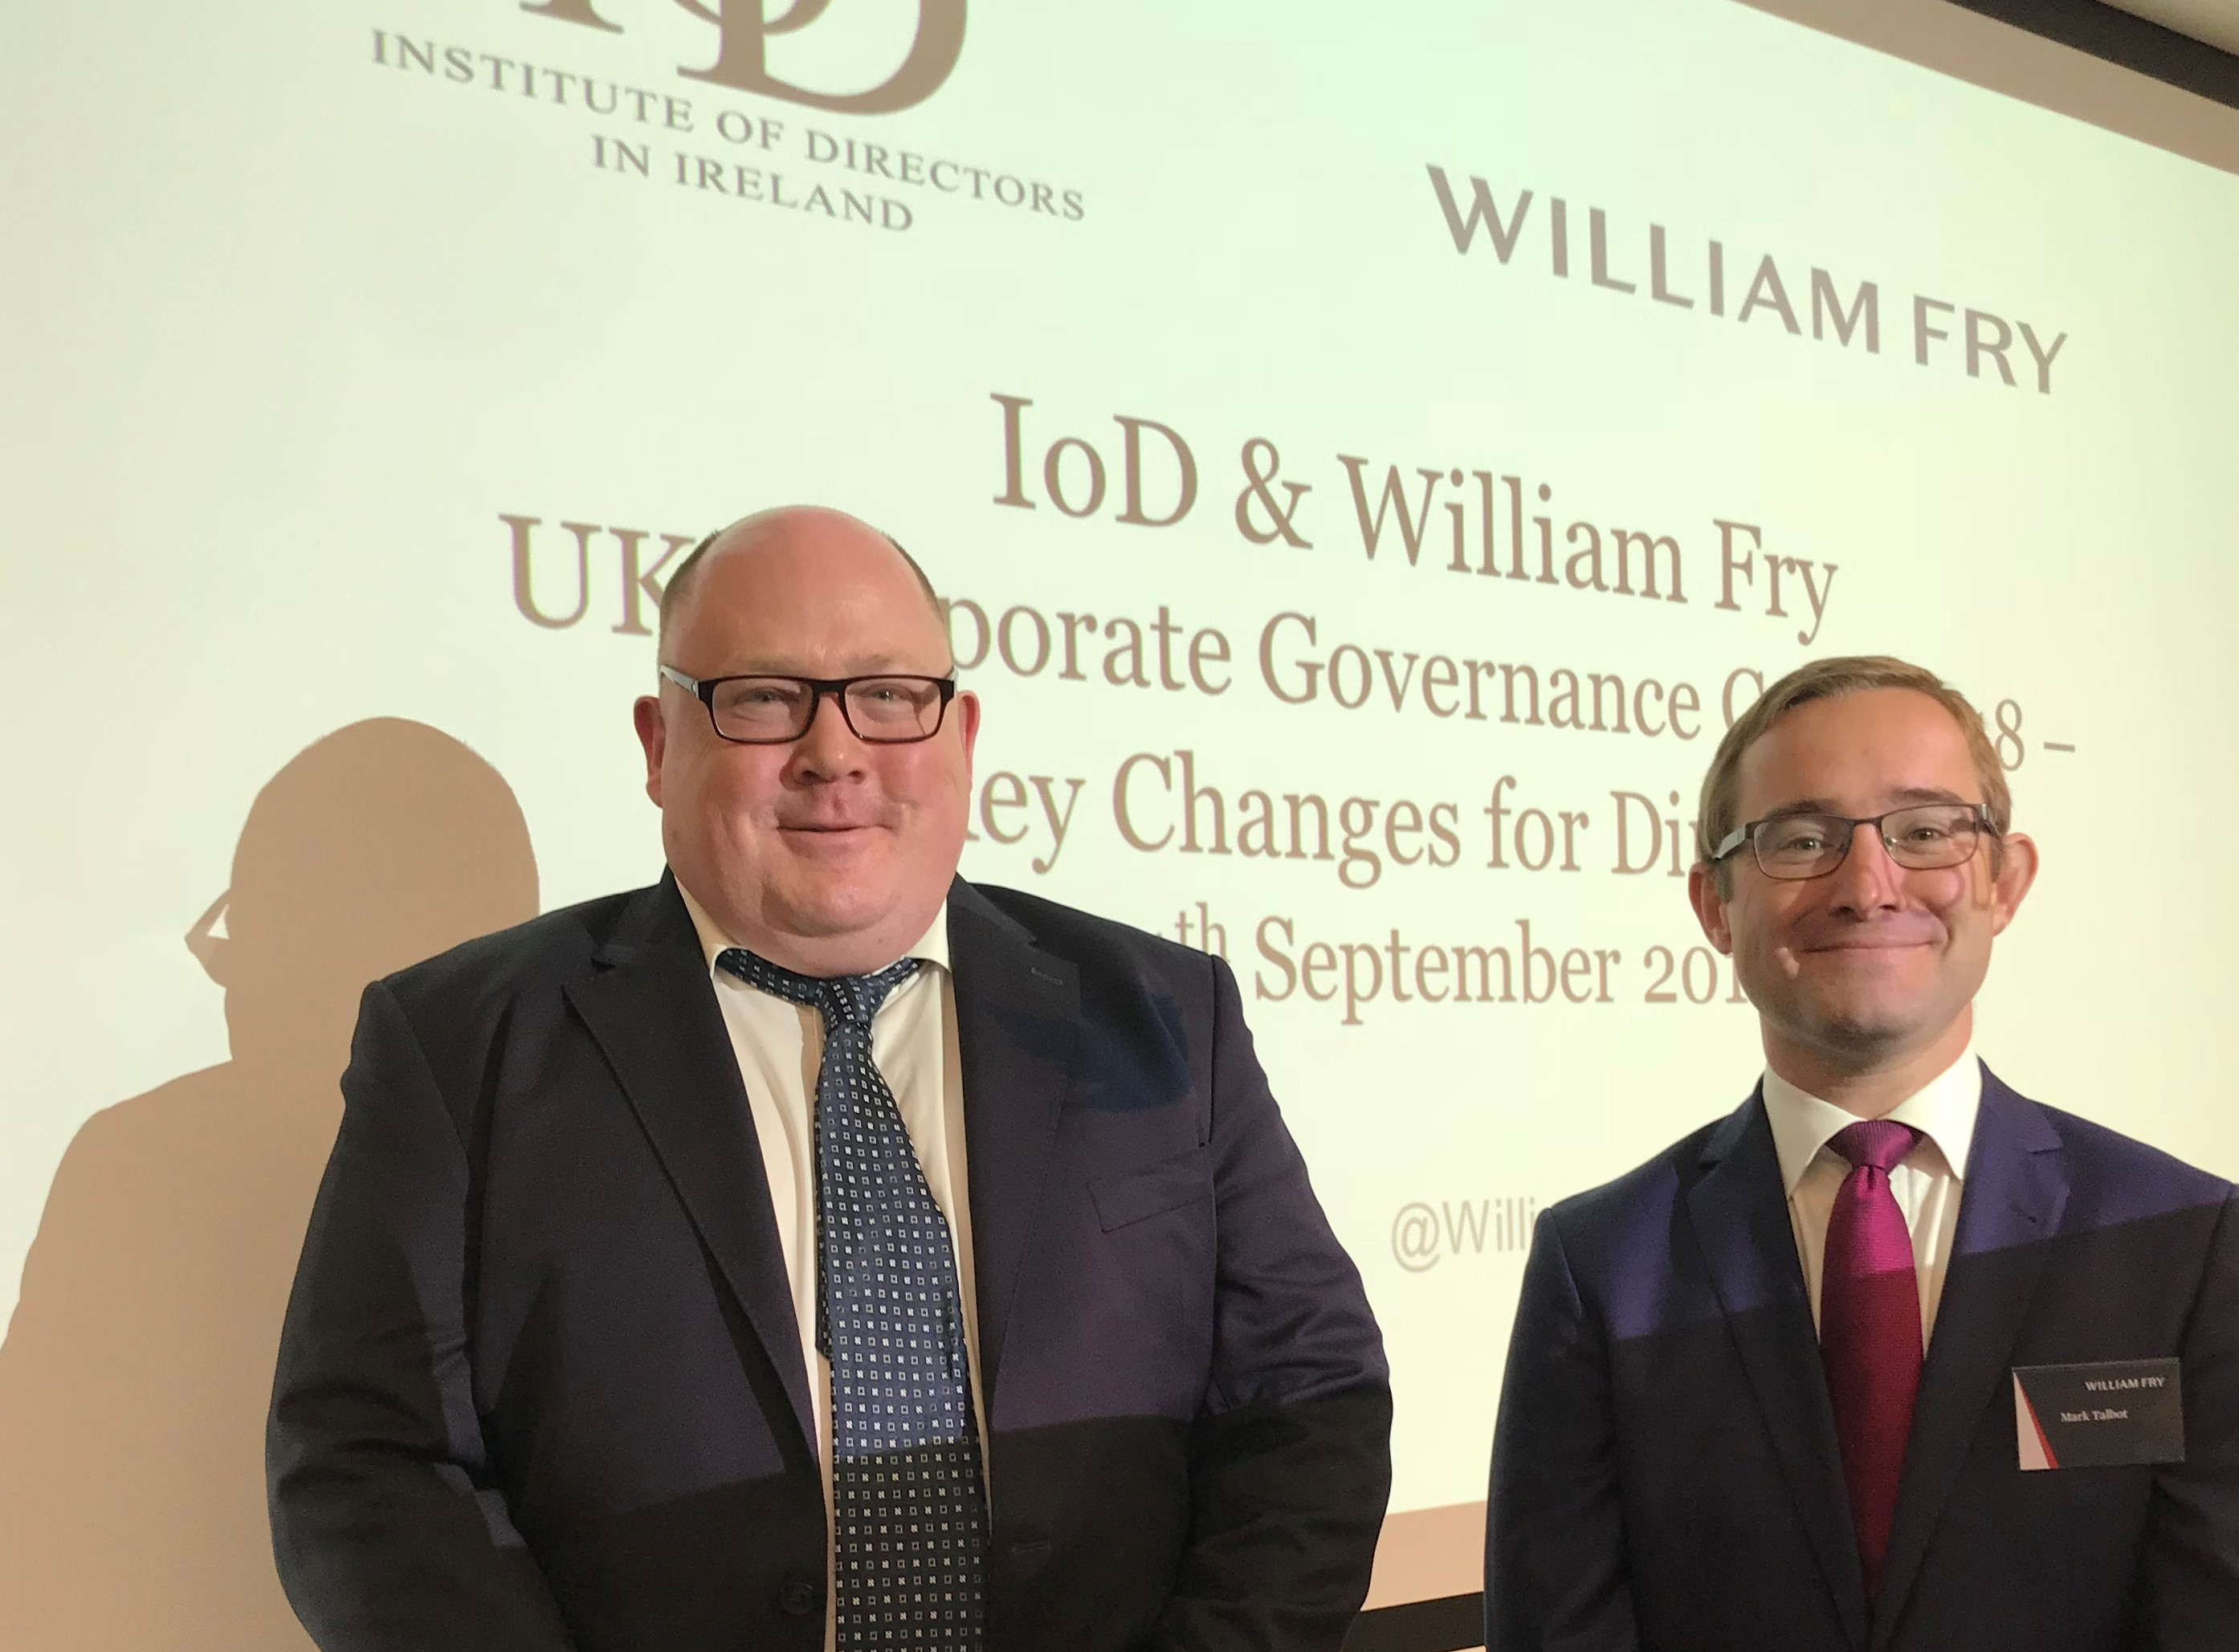 IoD & William Fry - UK Corporate Governance Code 2018 - Key Changes for Directors